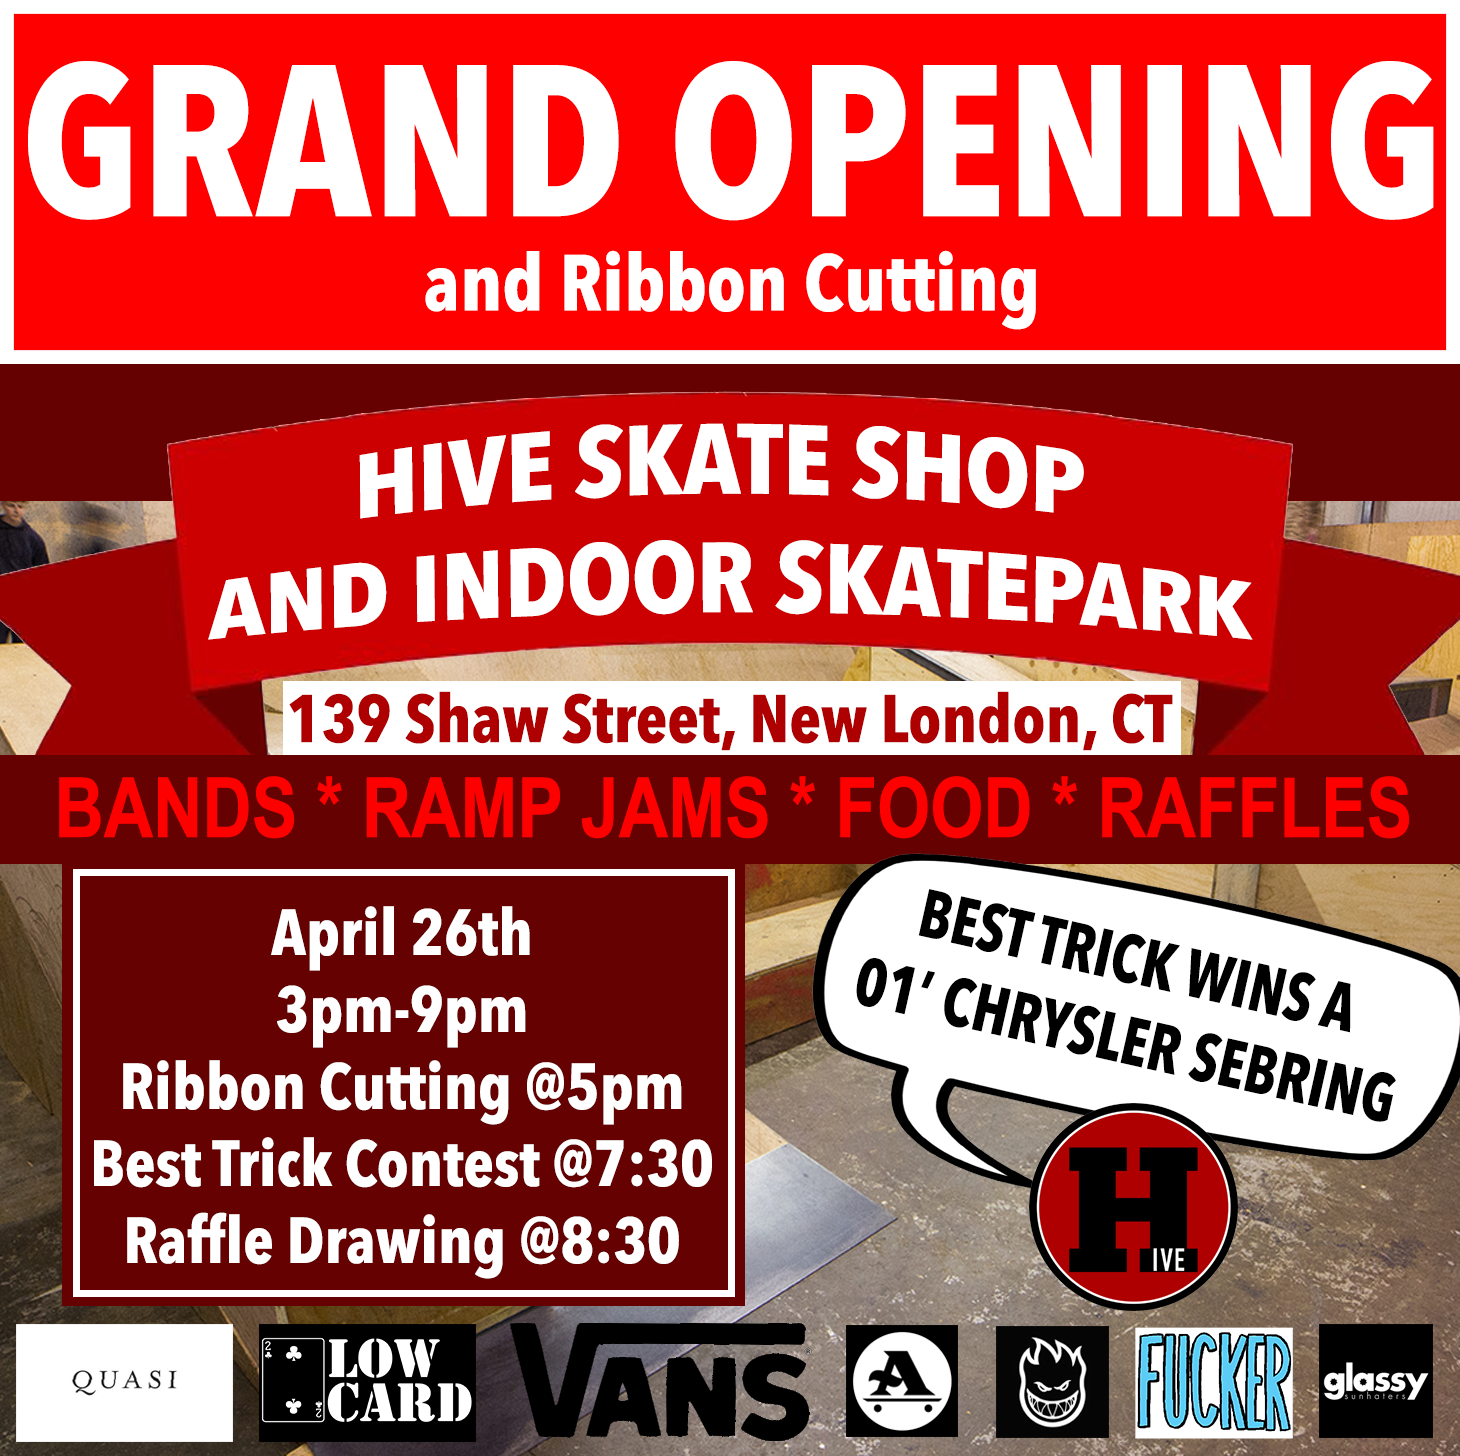 Indoor Skatepark Grand Opening and Ribbon Cutting